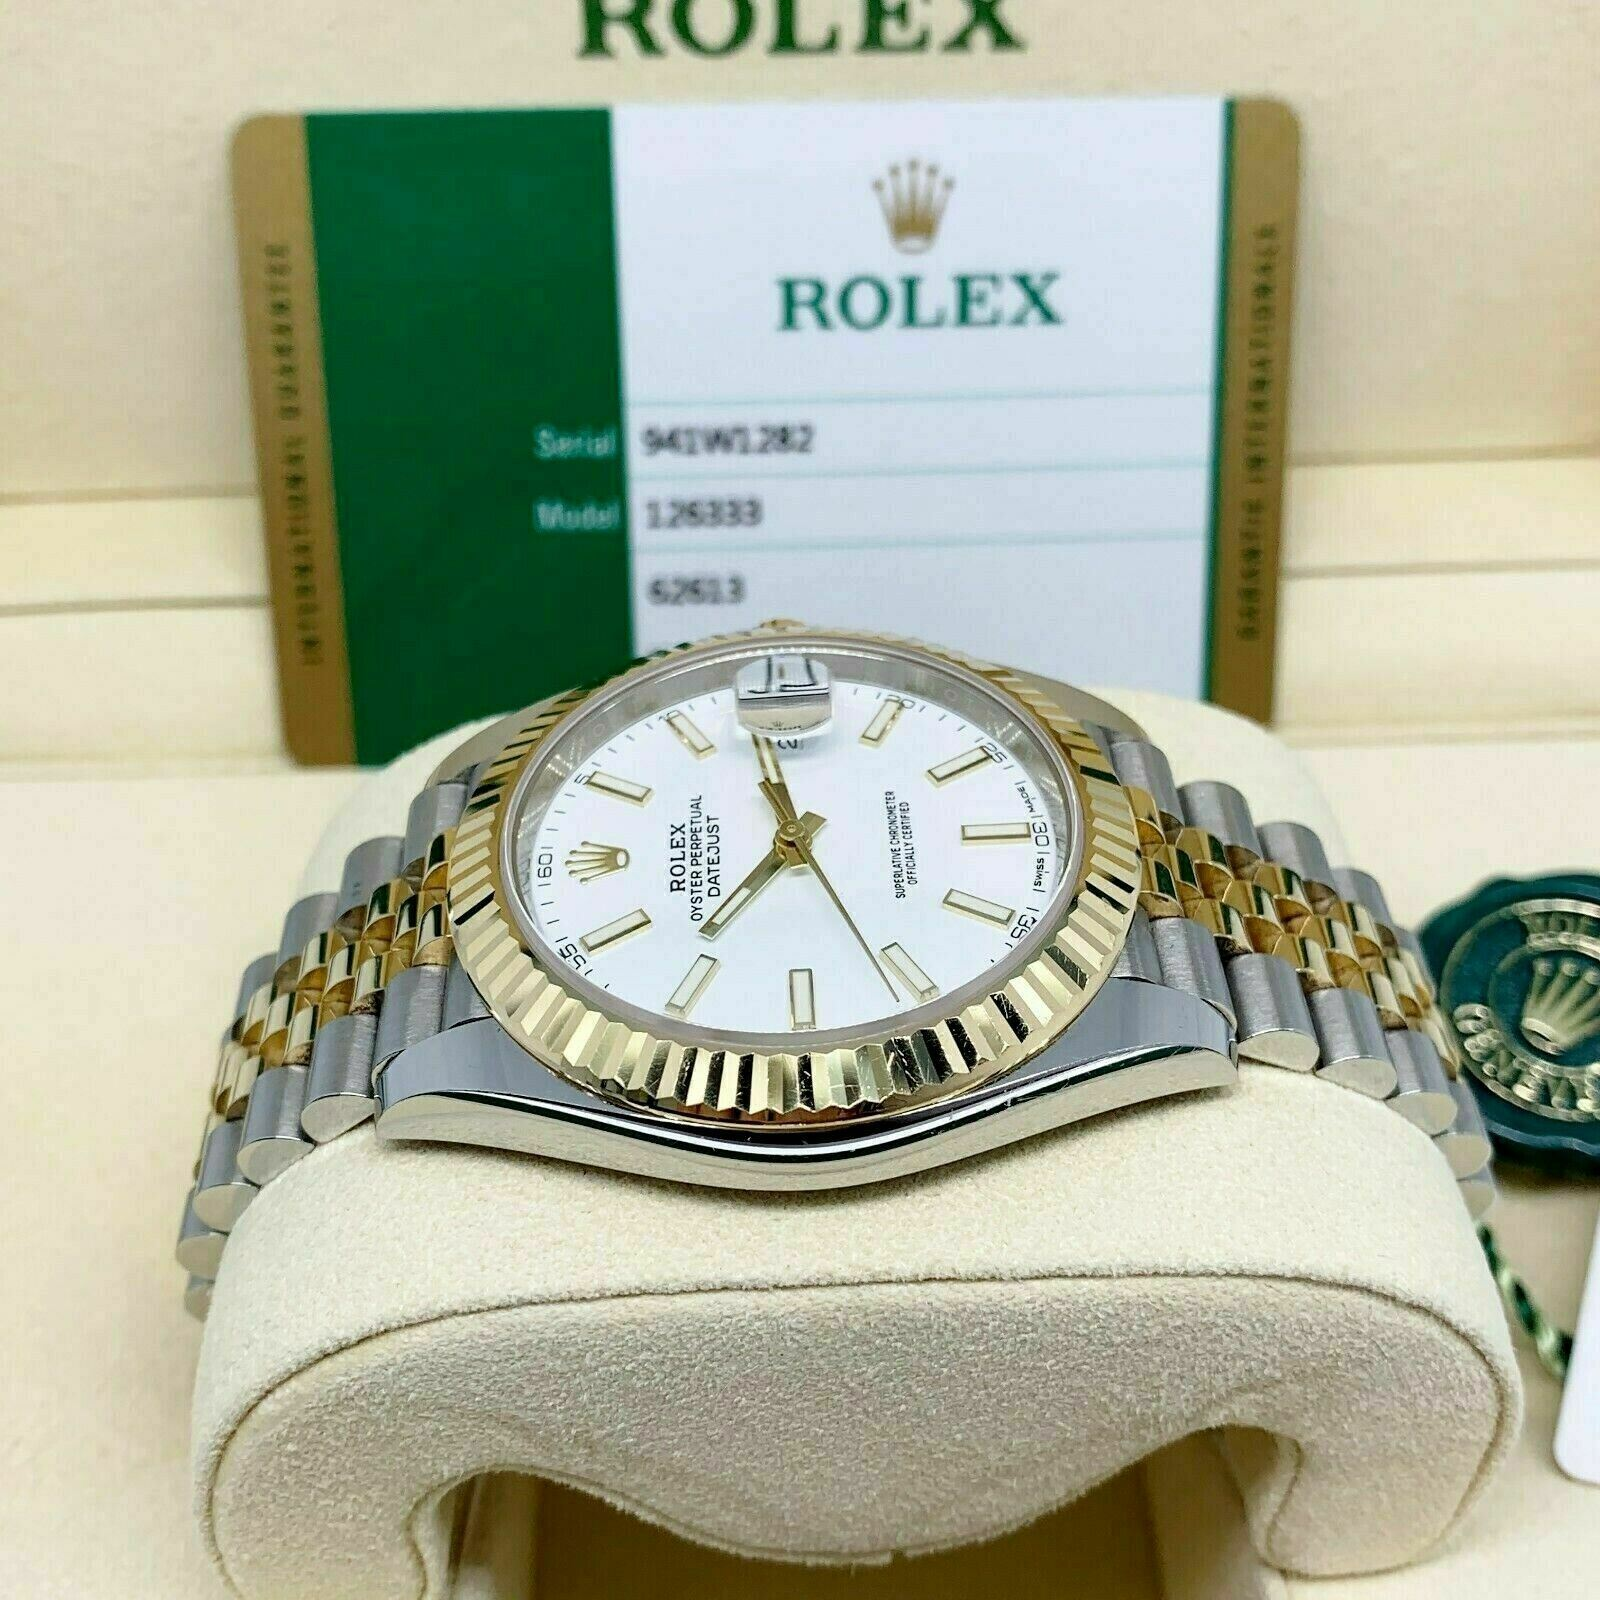 Rolex 41MM Datejust II Watch 18K Yellow Gold Stainless Steel Ref 126333 BoxCard